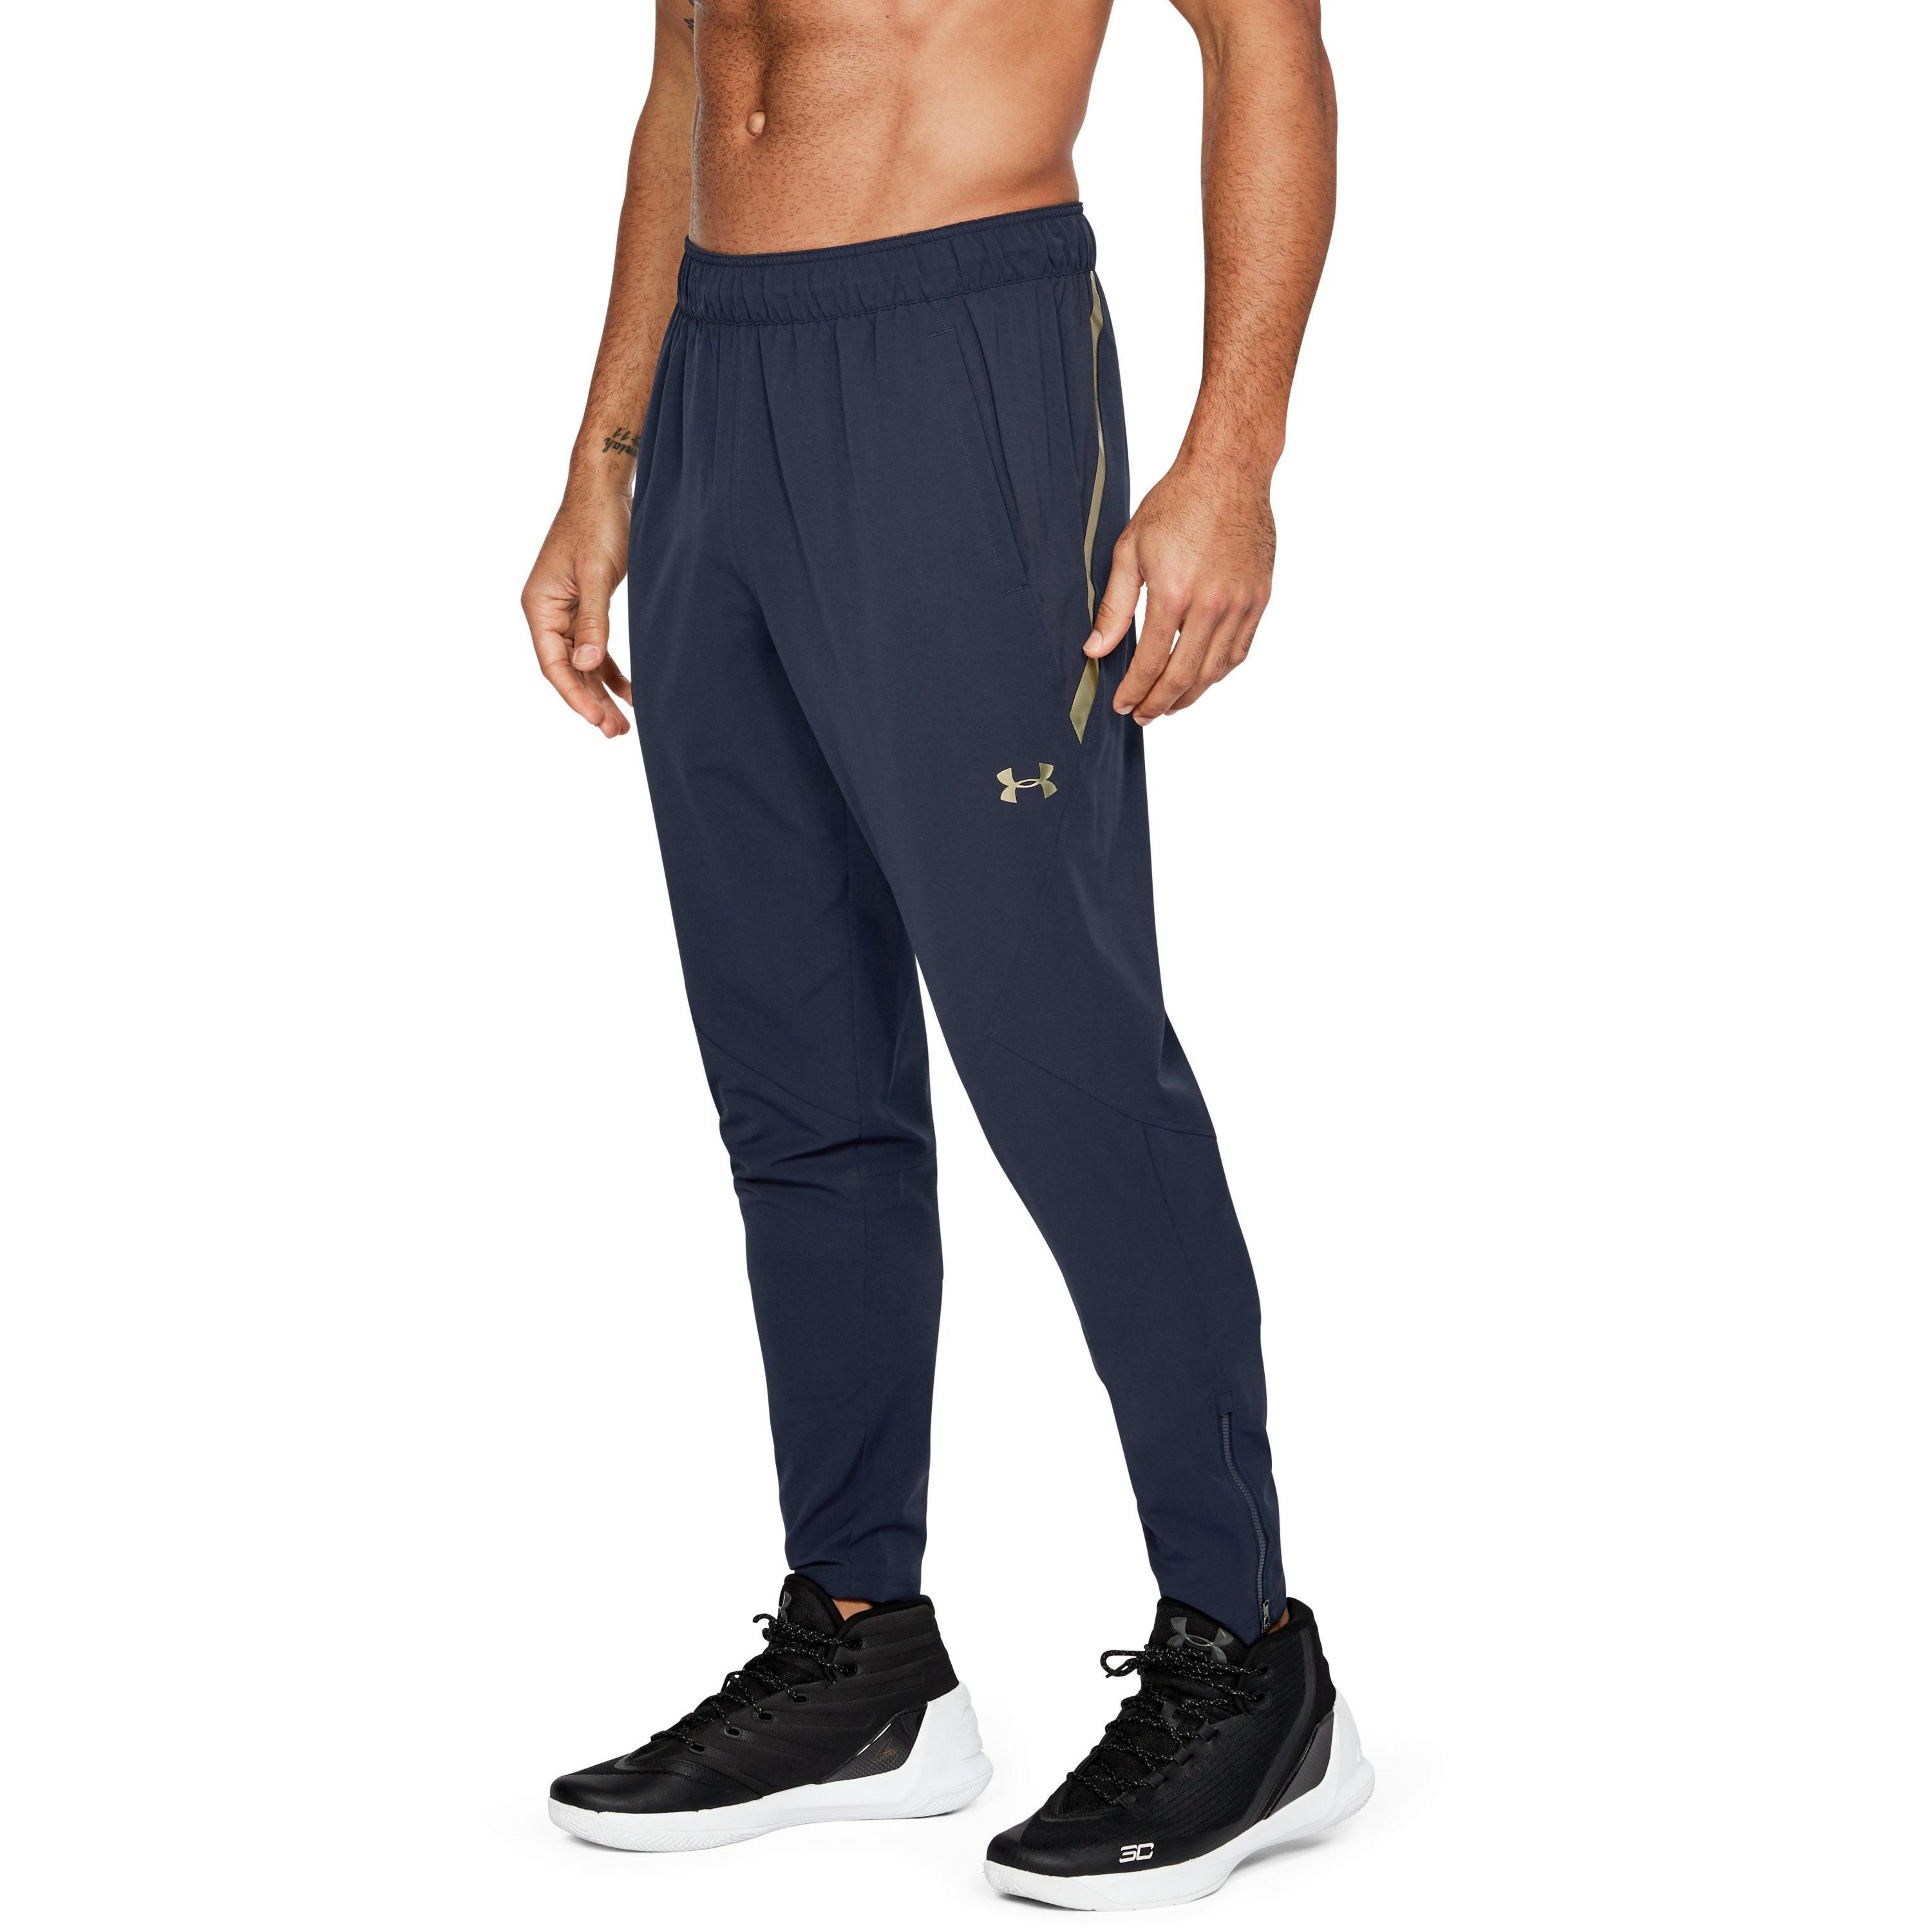 c2e51ba0 Lyst - Under Armour Men's Ua Select Warm-up Pants in Blue for Men